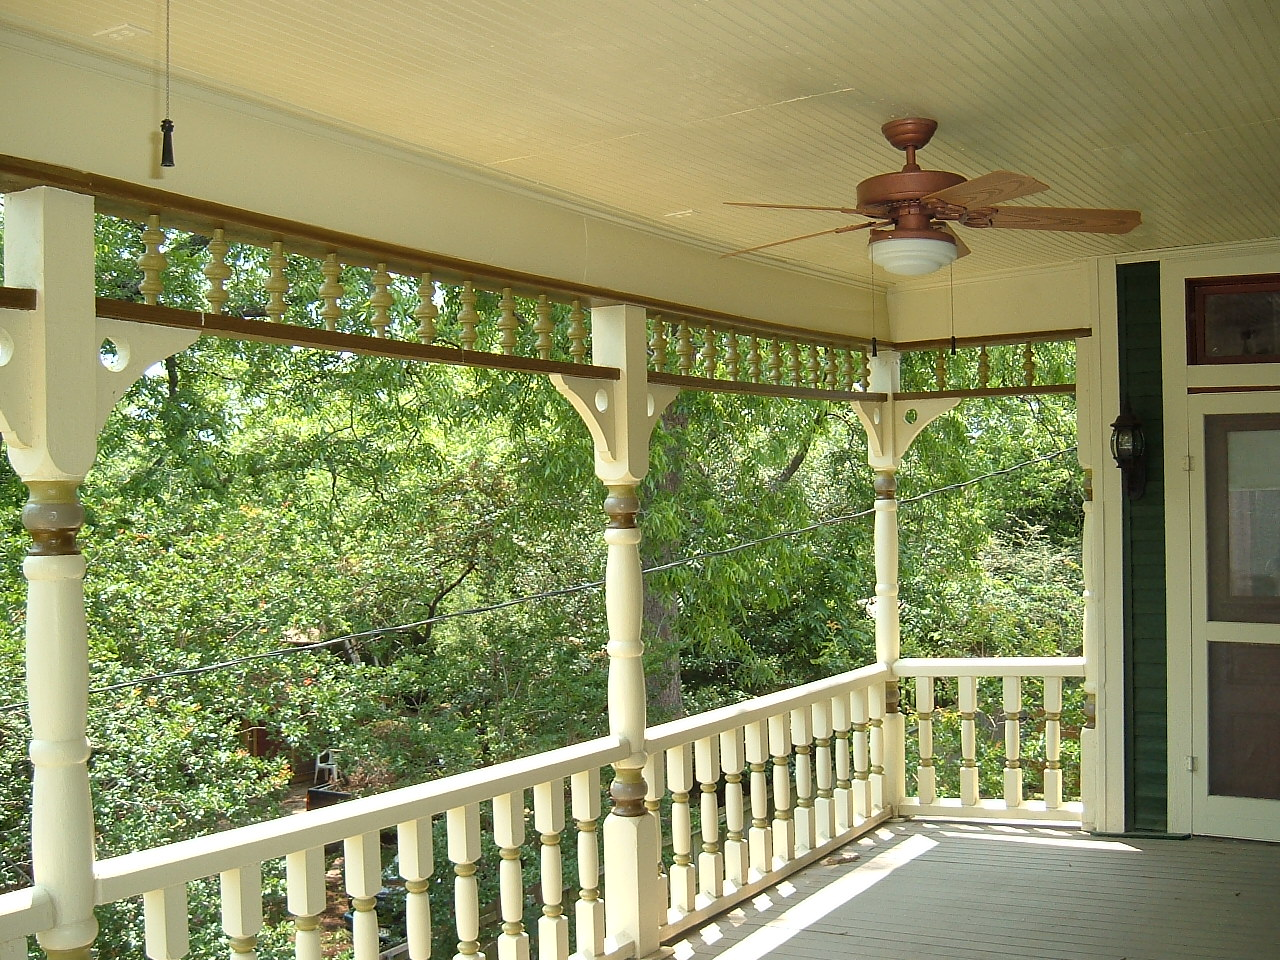 Houses With Wrap Around Porches On The Second Floor